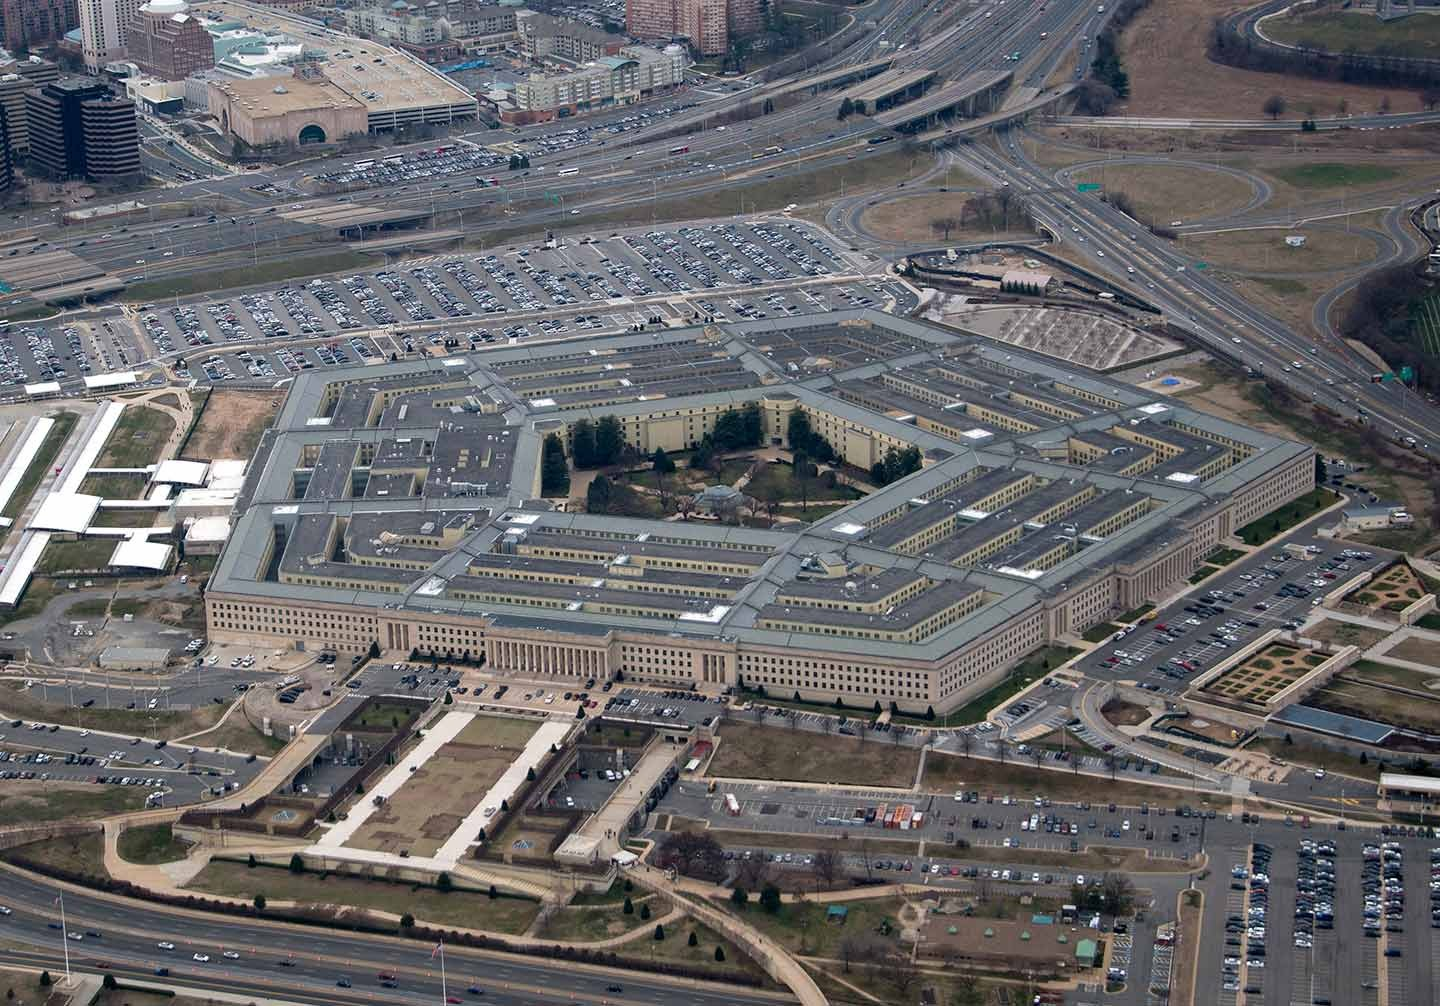 Make our Pentagon great again